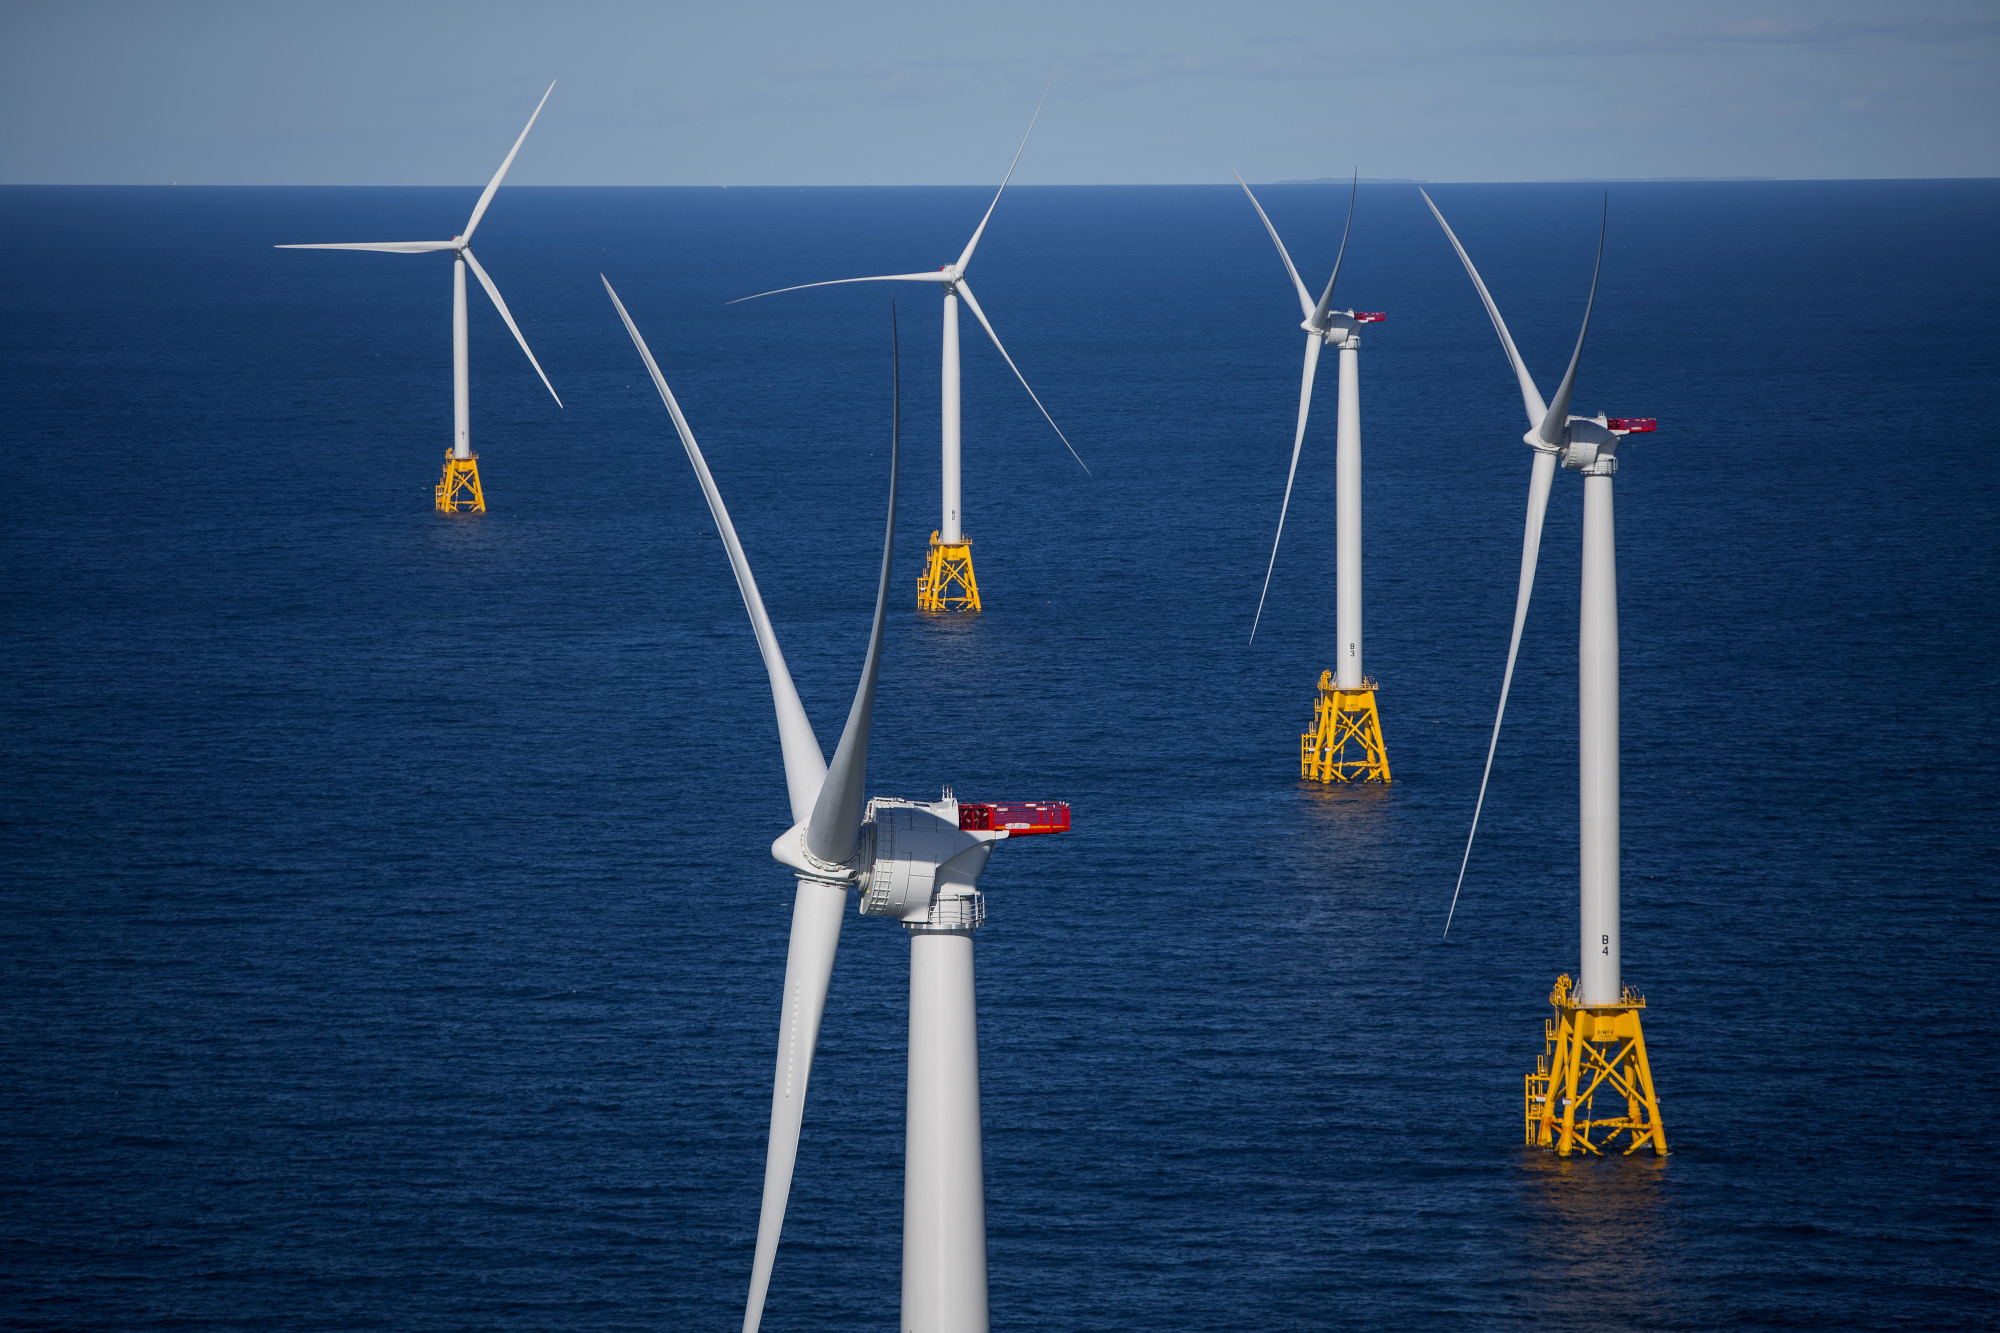 MHI-Vestas. Photographer: Eric Thayer/Bloomberg